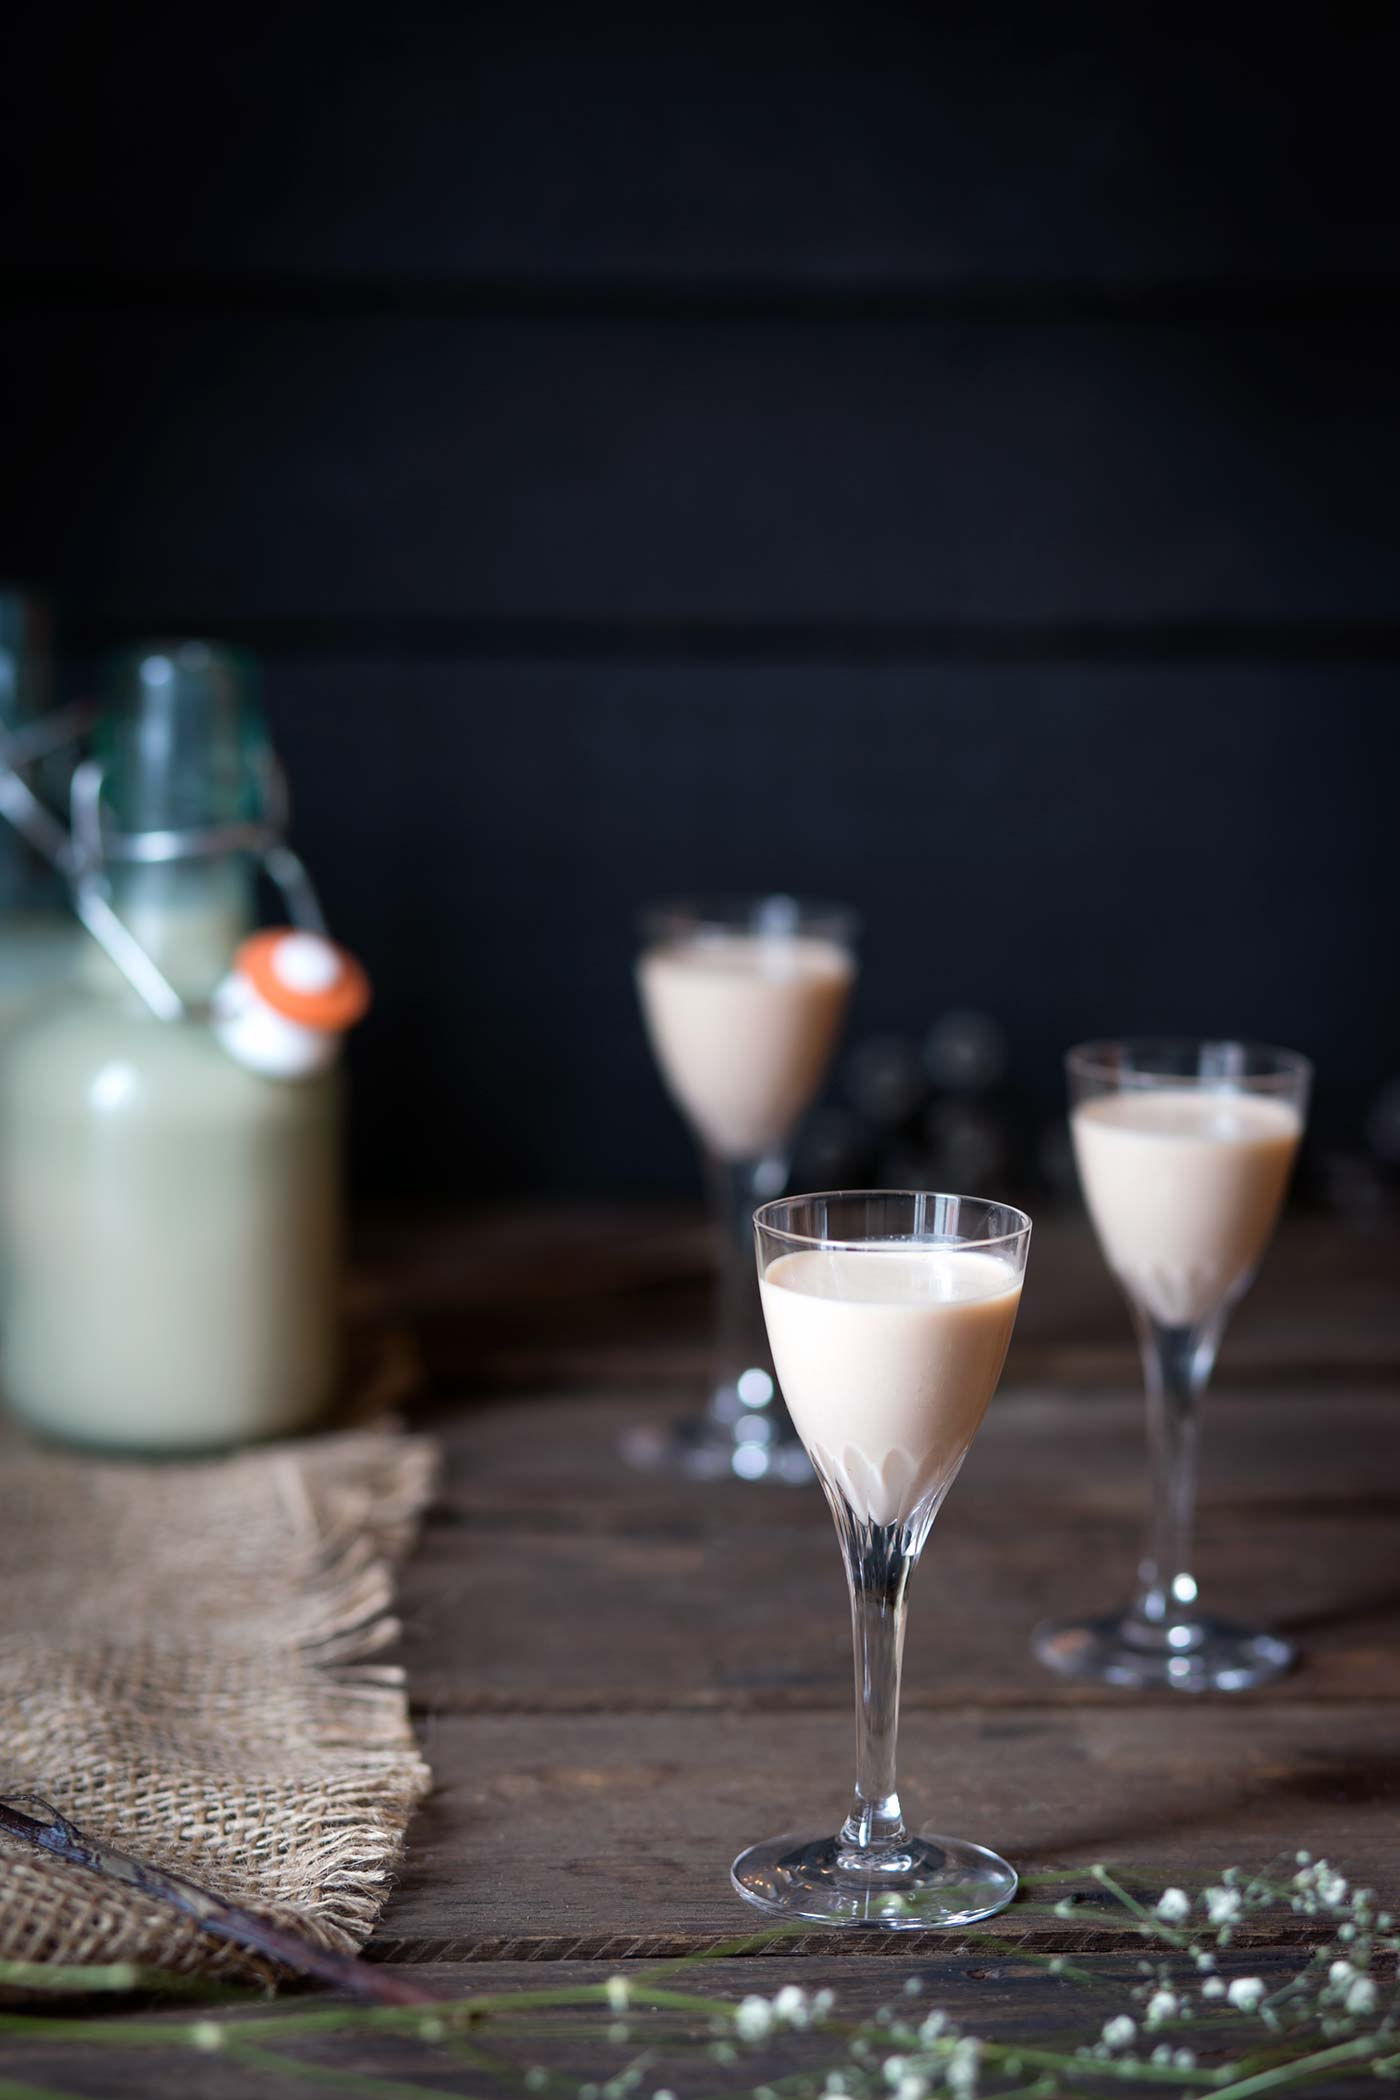 Love Bailey's Irish Cream? You need to try making it from scratch! Homemade Irish Cream is so easy and it tastes AMAZING. Get the recipe from SavorySimple.net.